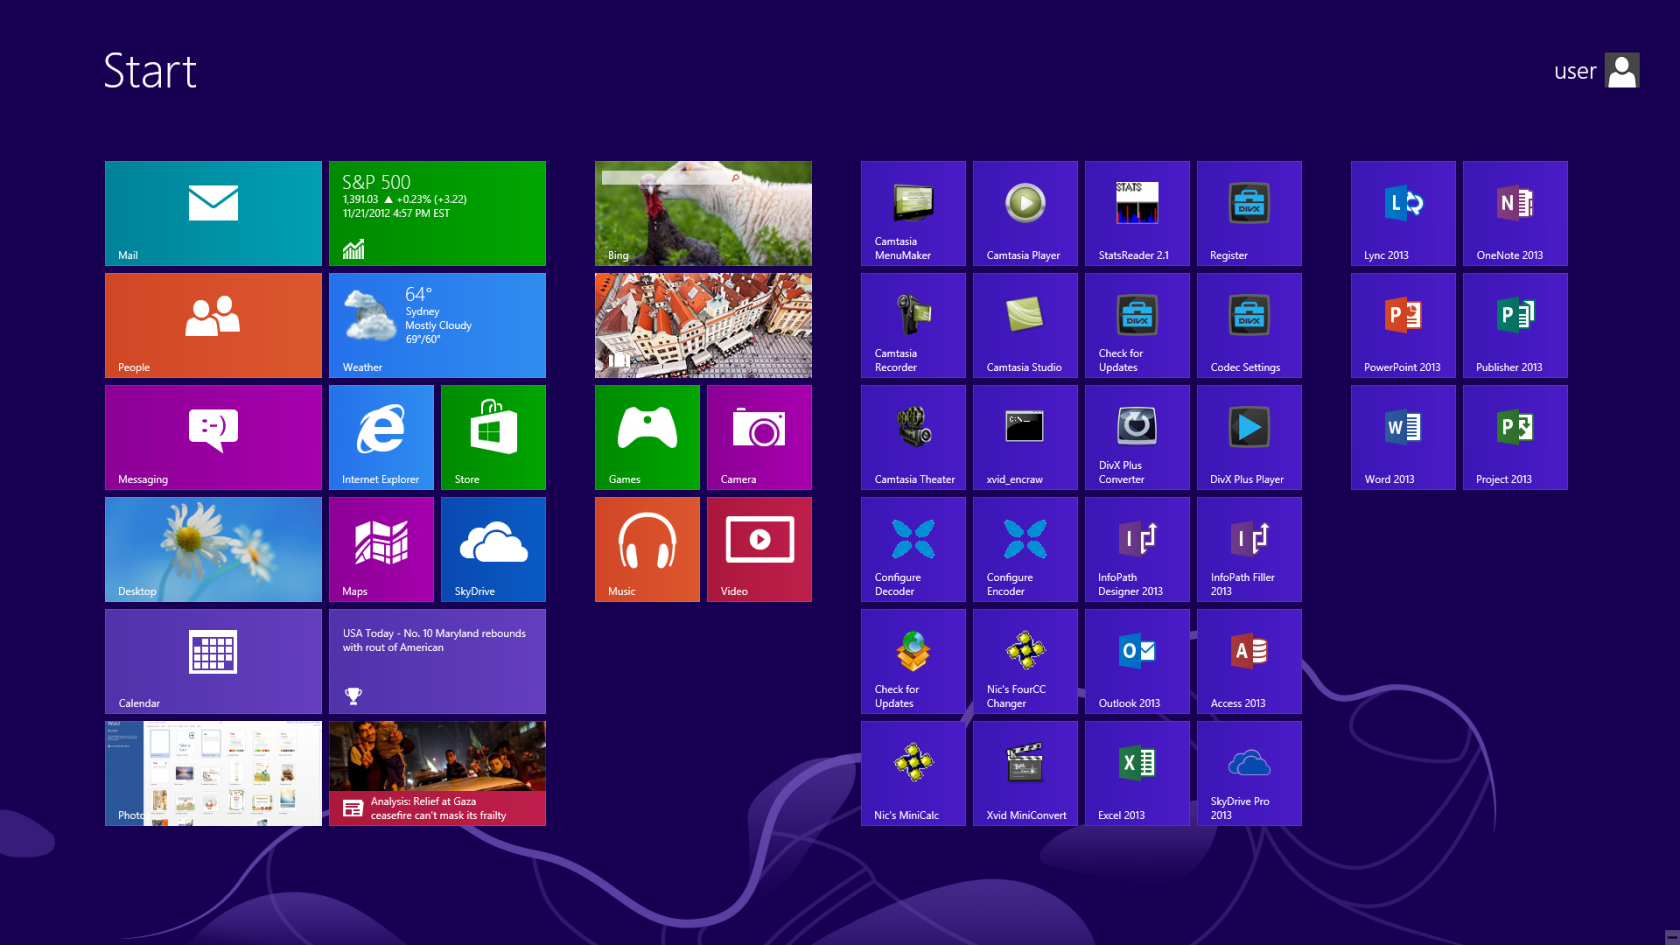 Microsoft Windows 8 Professional x64 64-bit Start screen